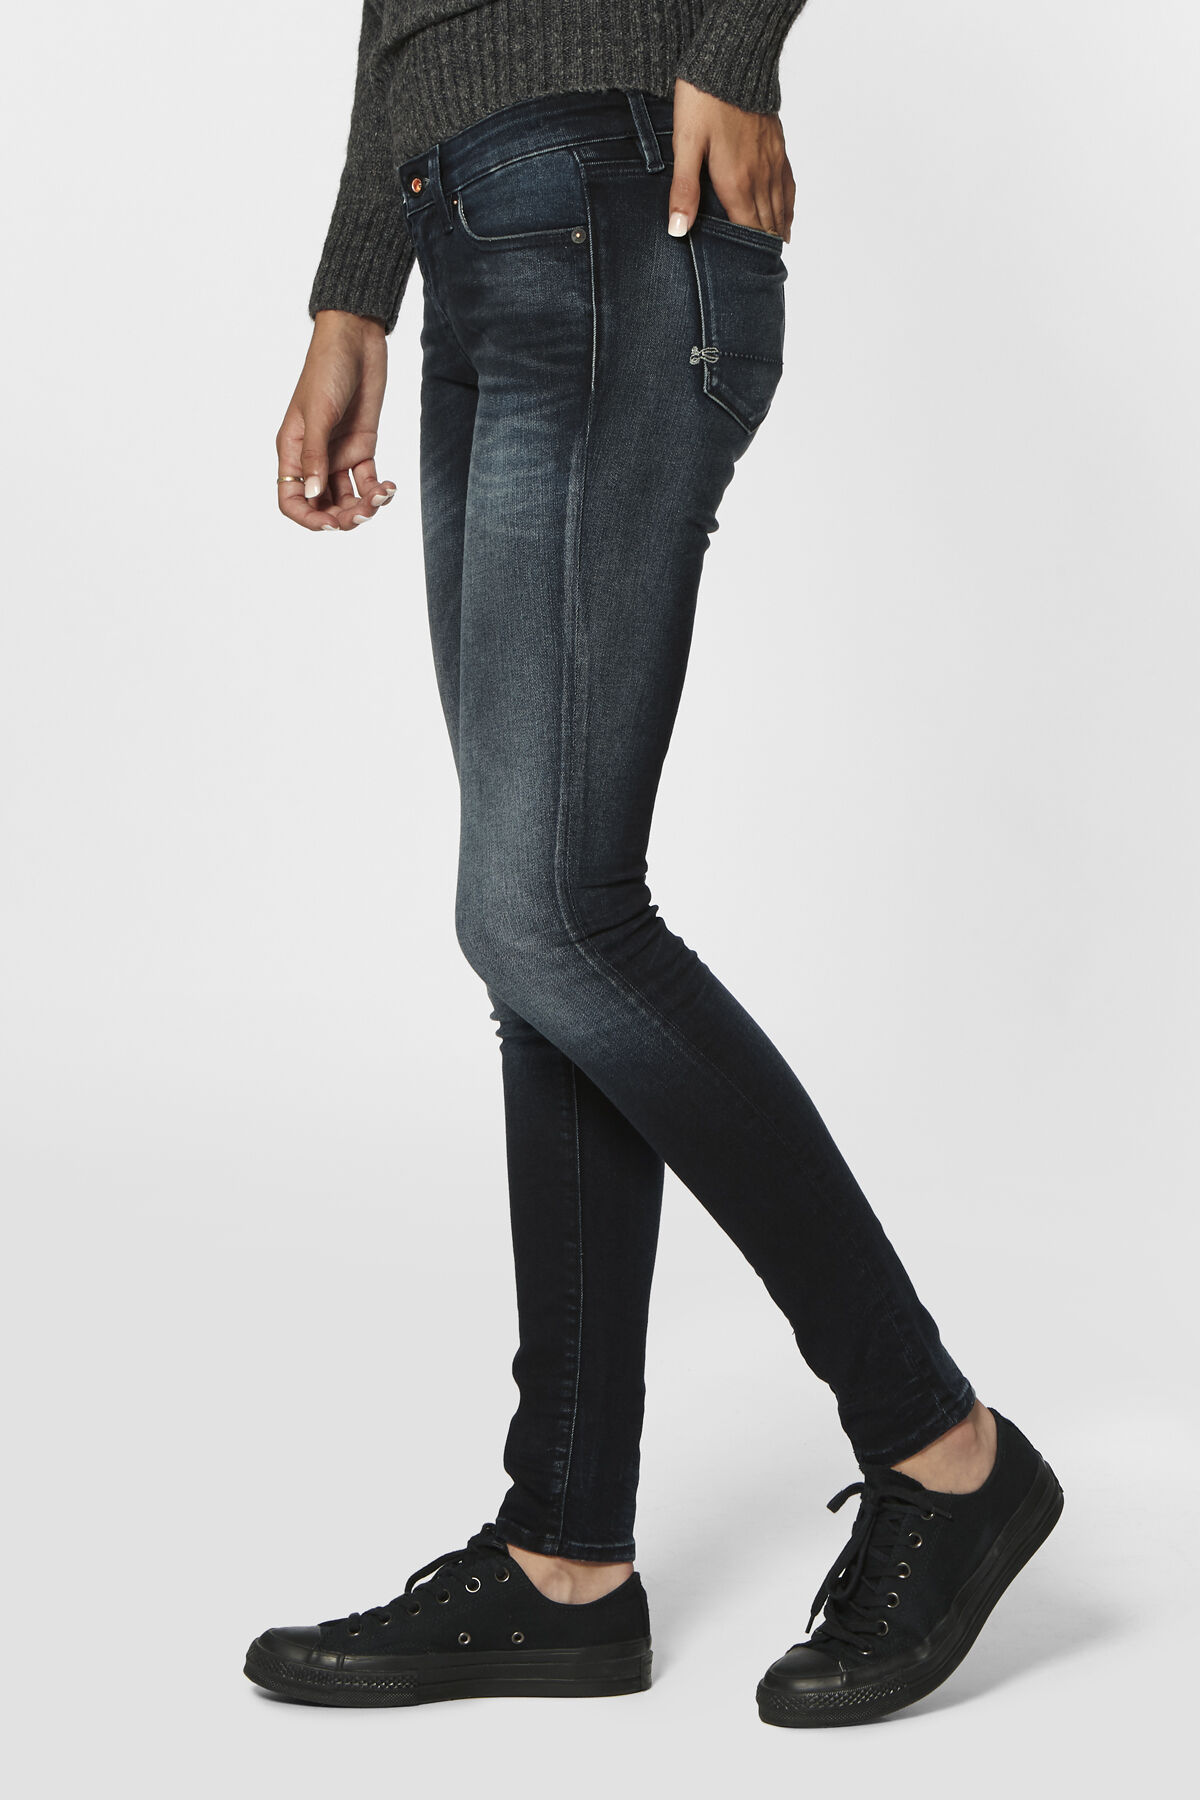 Sharp Skinny Fit Jeans - NY